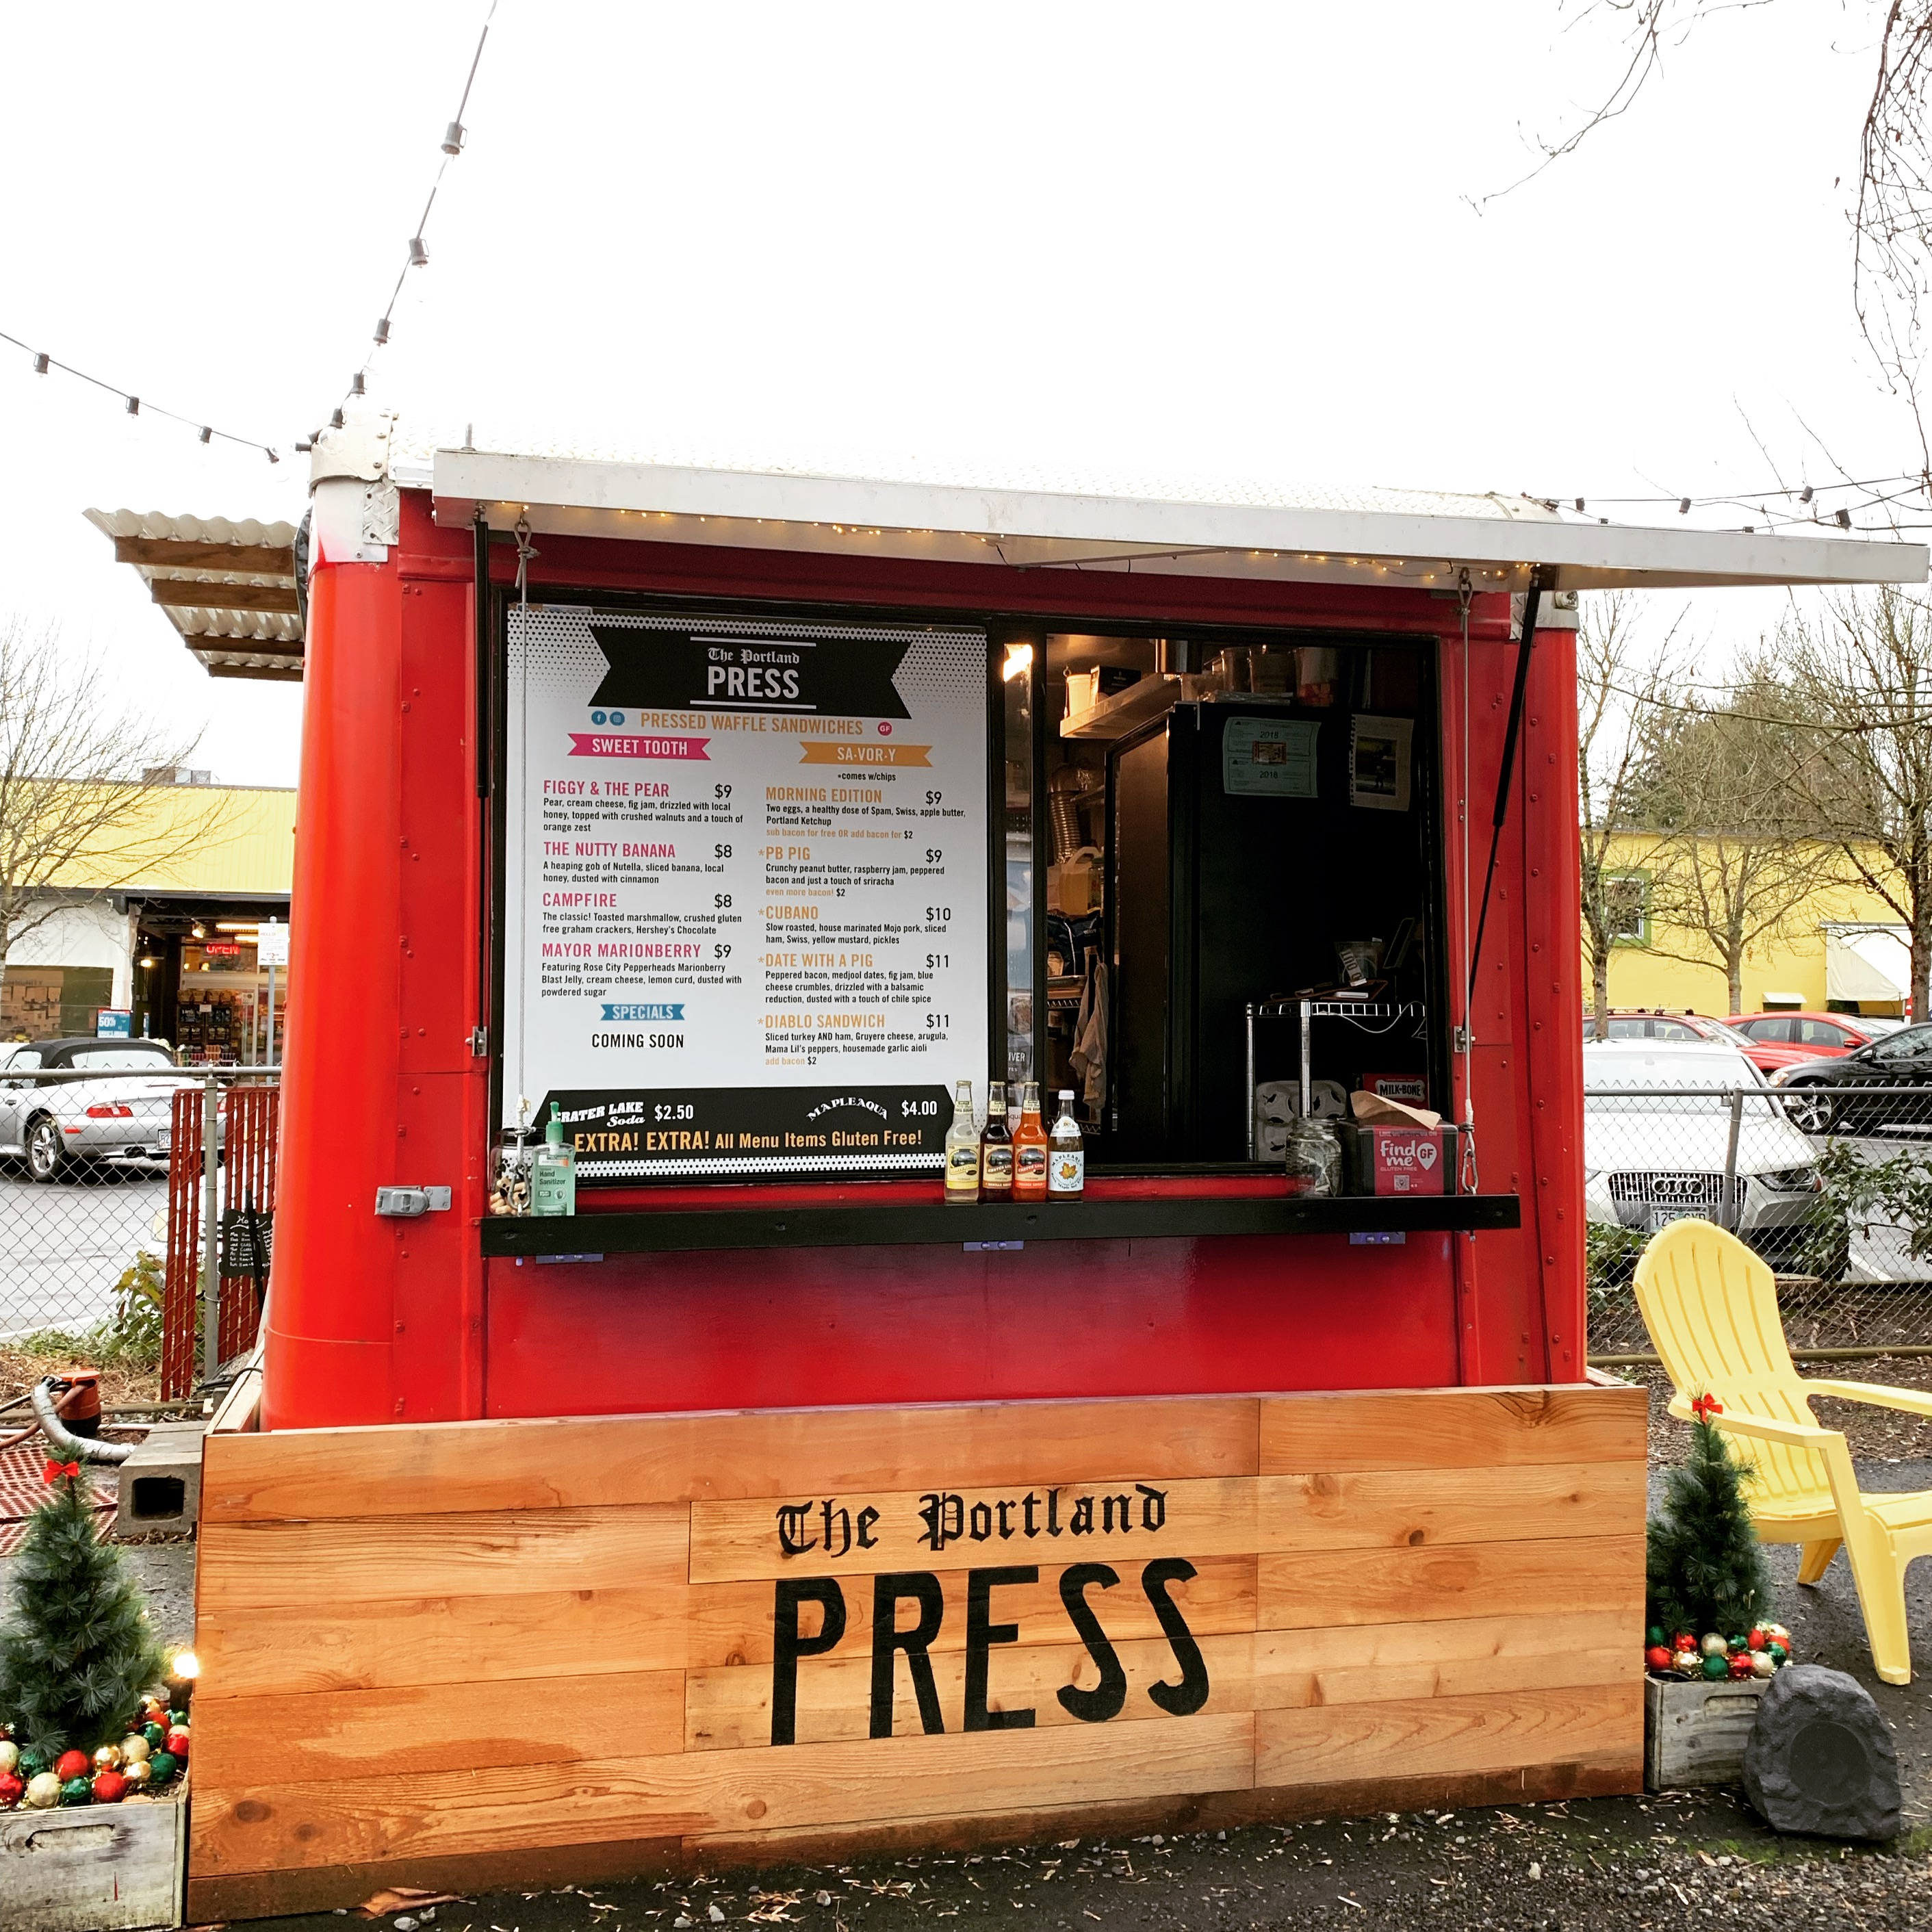 The Portland Press Food Cart - Culinary Treasure by Steven Shomler